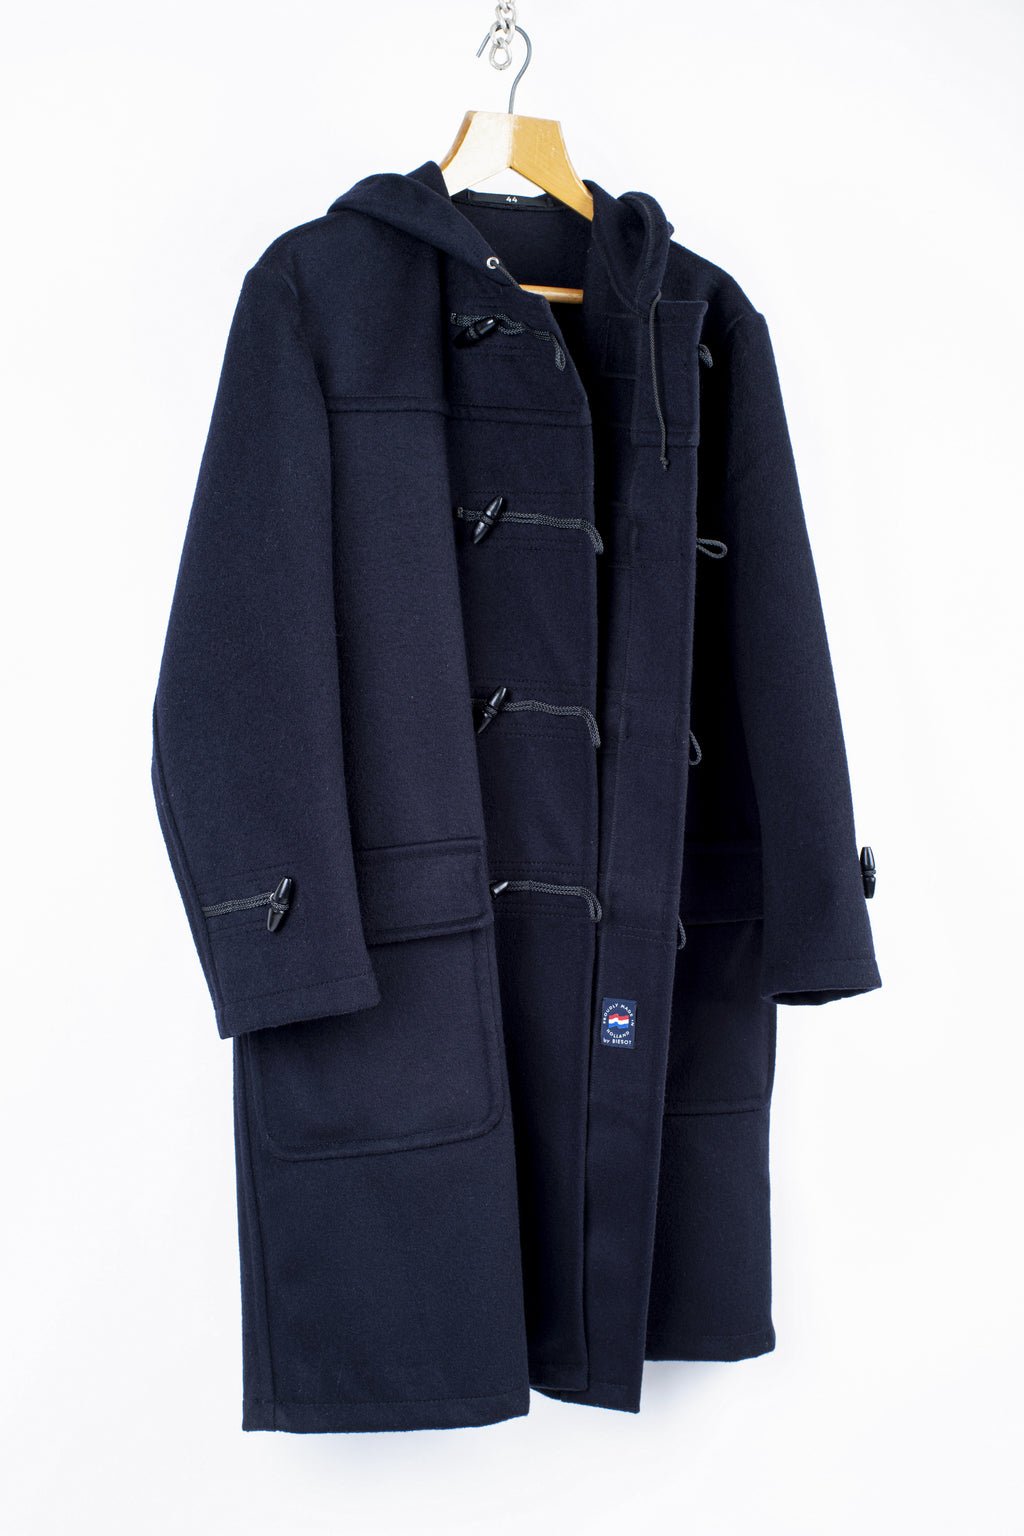 Men's Navy Blue Biesot Duffle Coat, SIZE 44, XL